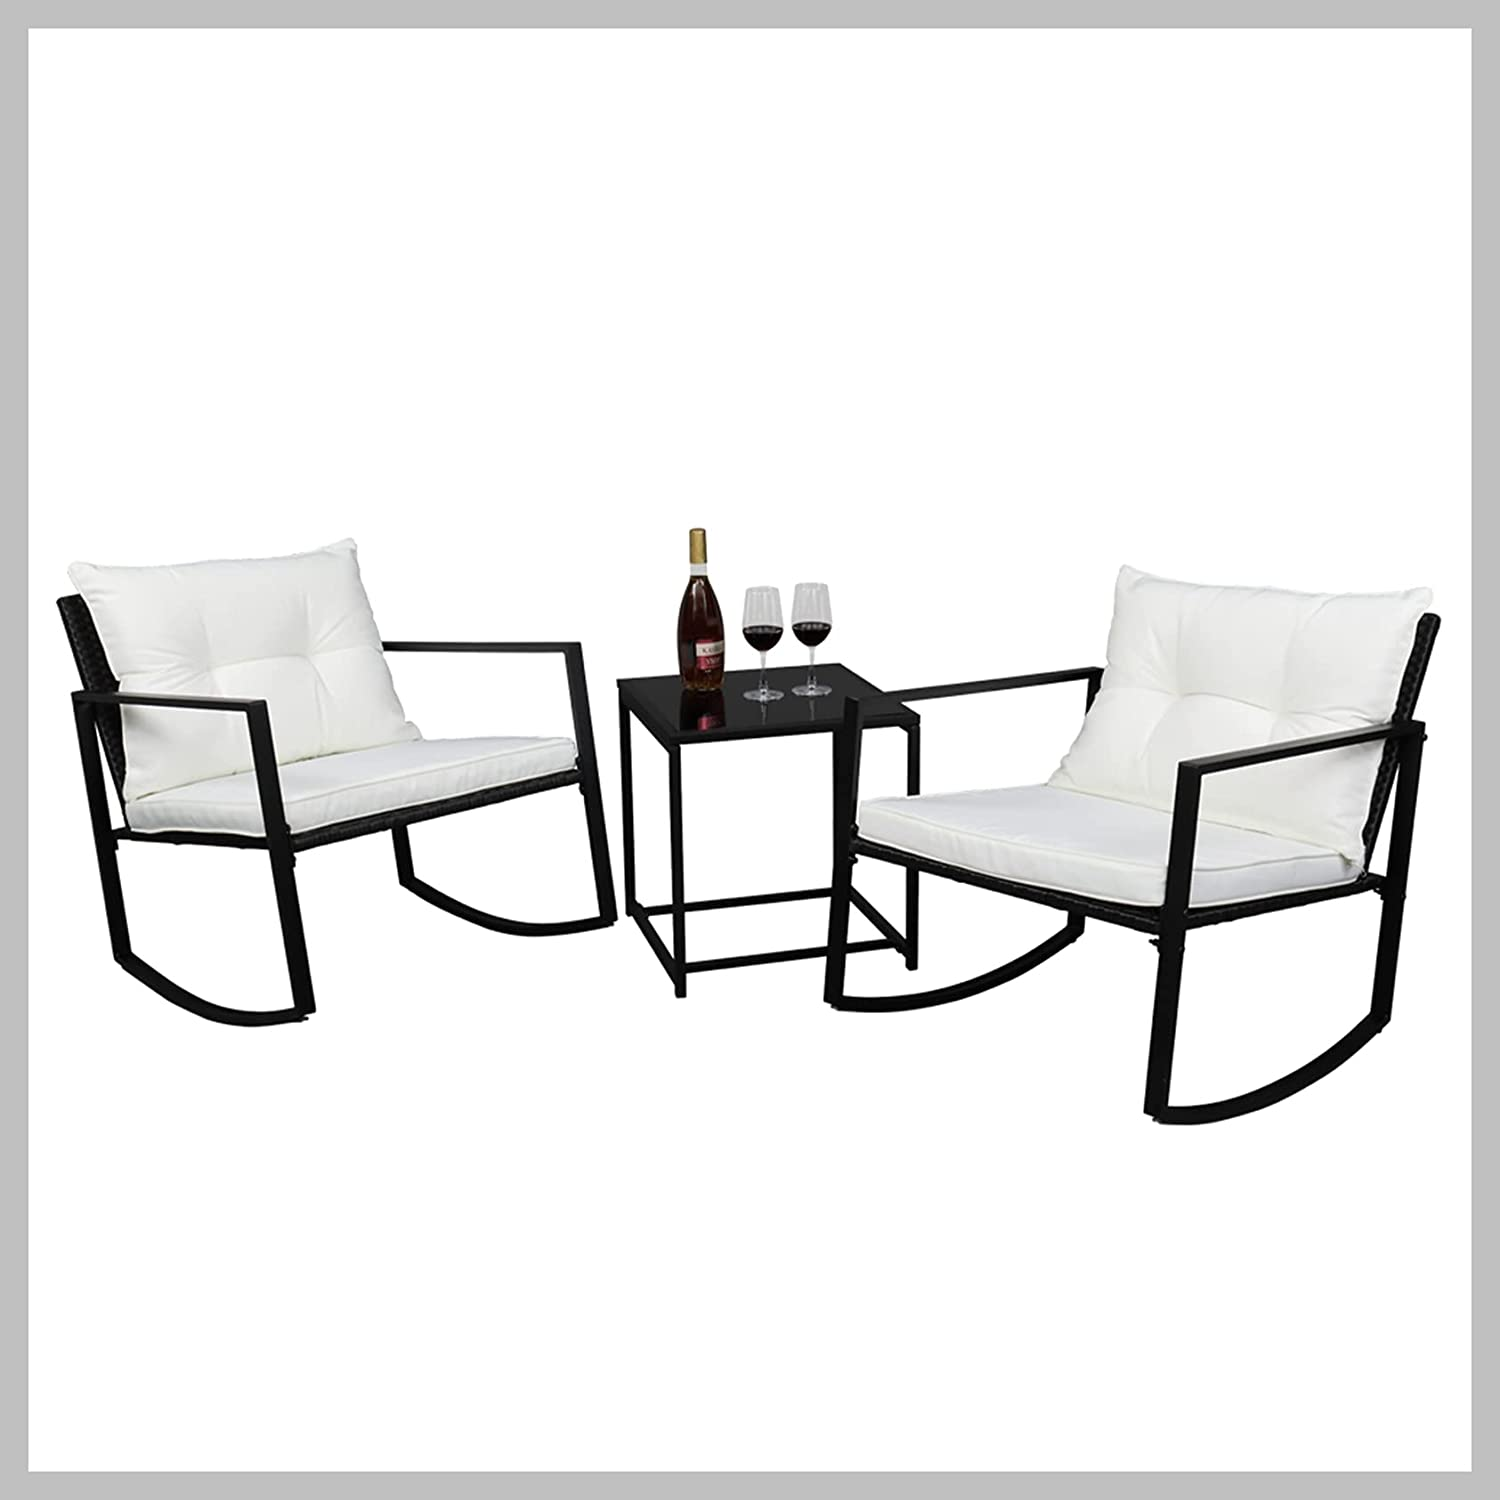 Credence Single Direct sale of manufacturer 2pcs Coffee Table 1pc Rocking Exposed Chair Three-Piece S